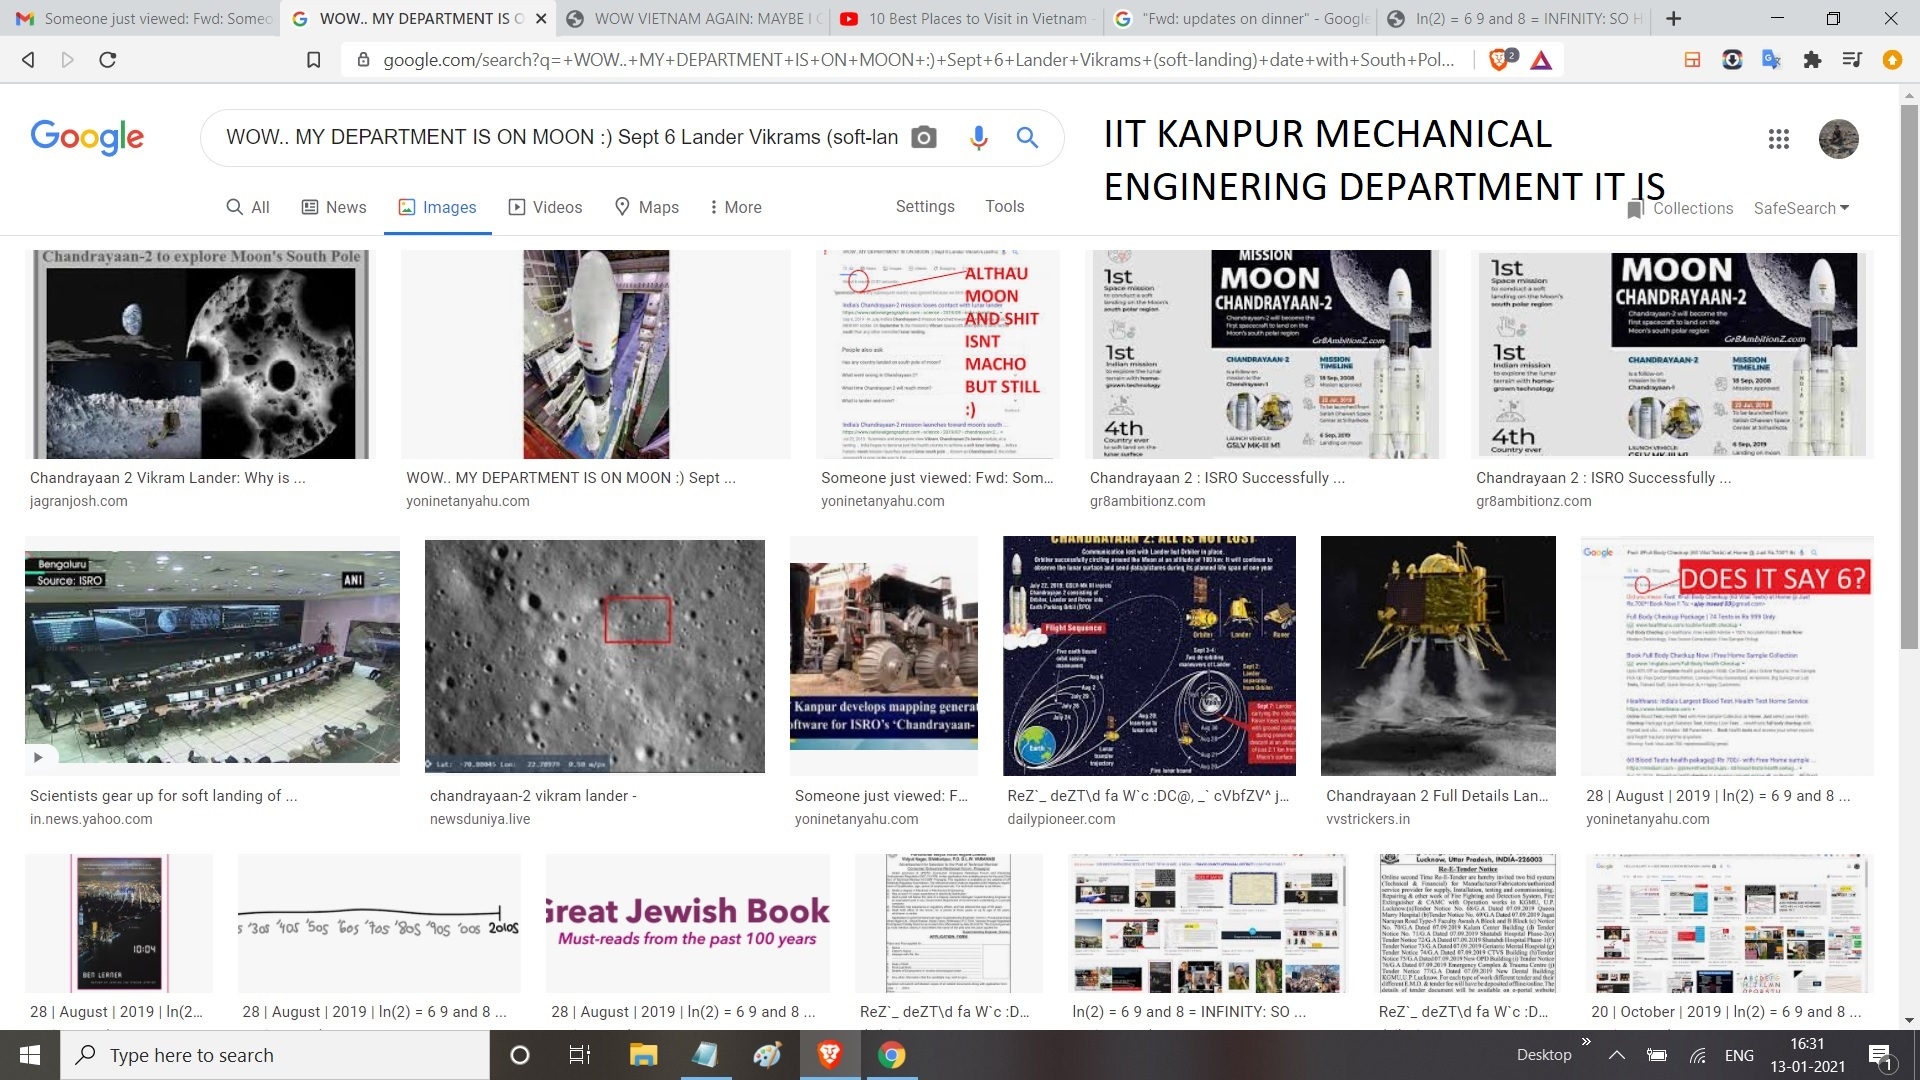 IIT KANPUR MECHANICAL ENGINERING DEPARTMENT IT IS